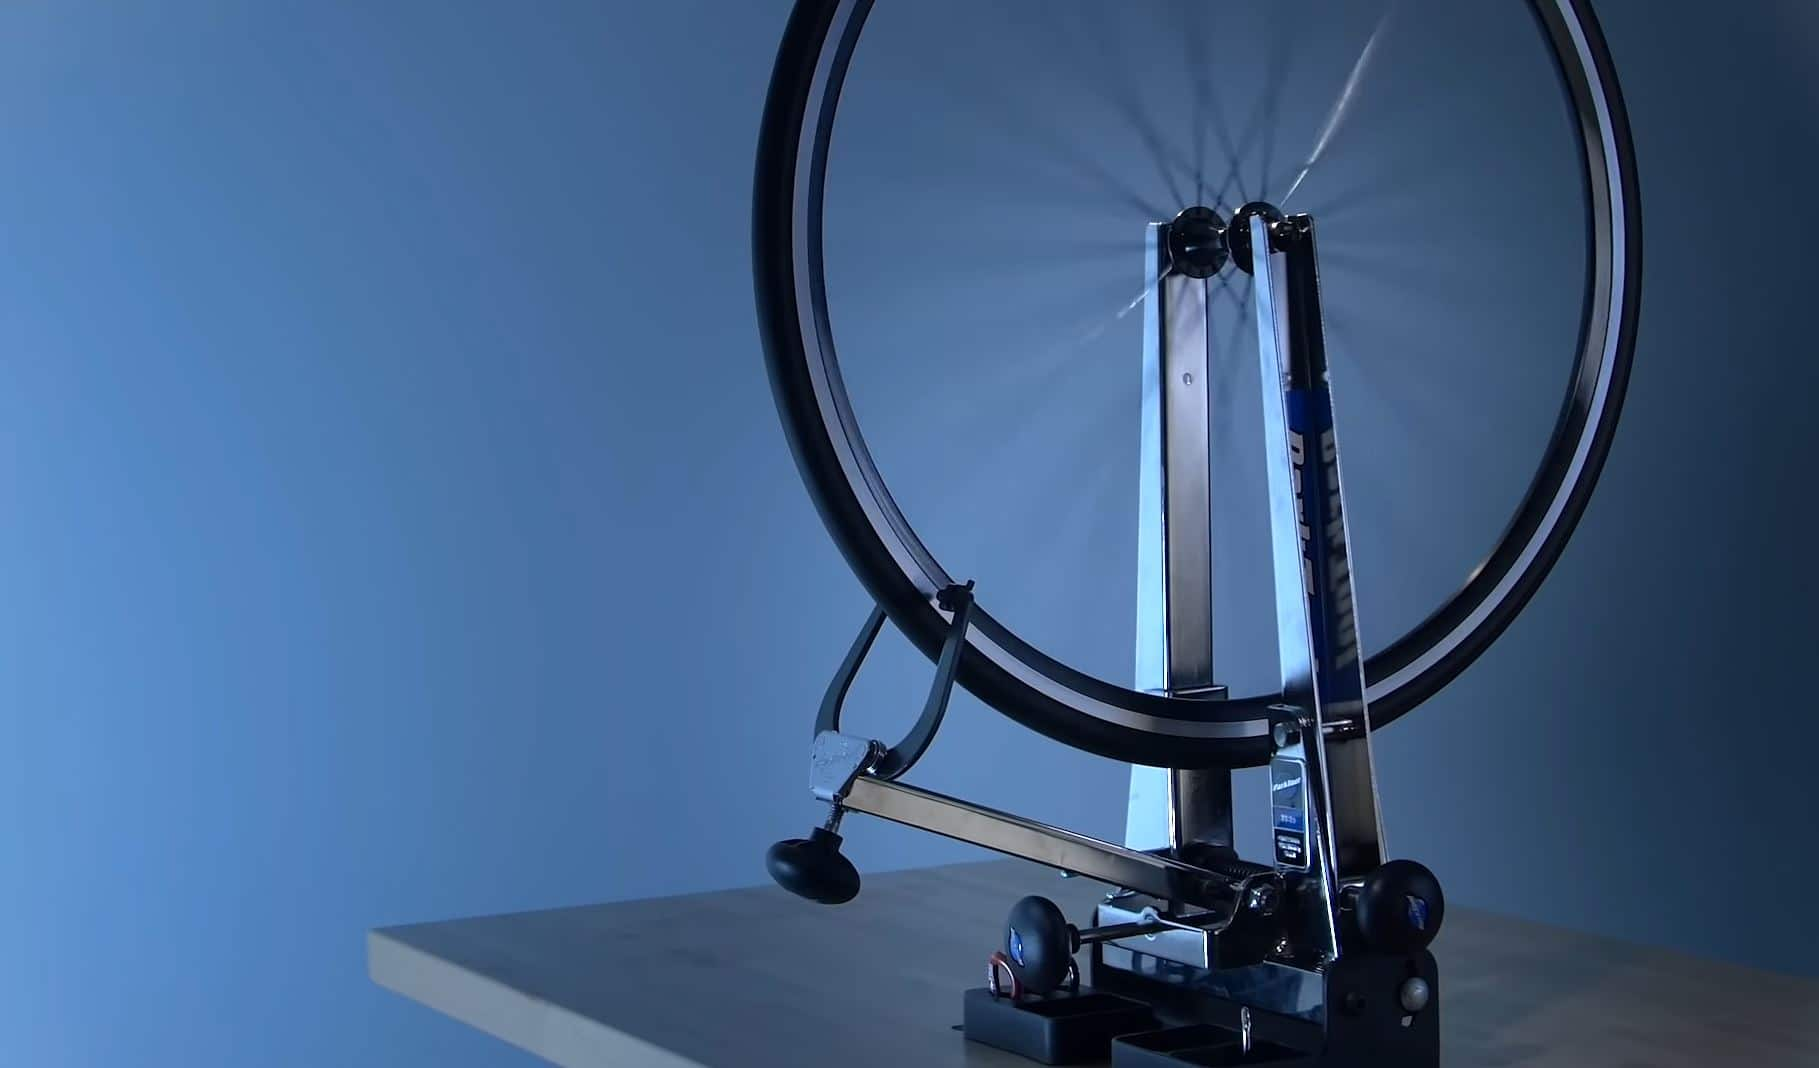 Best Wheel Truing Stand Reviews 2021 & Buying Guide